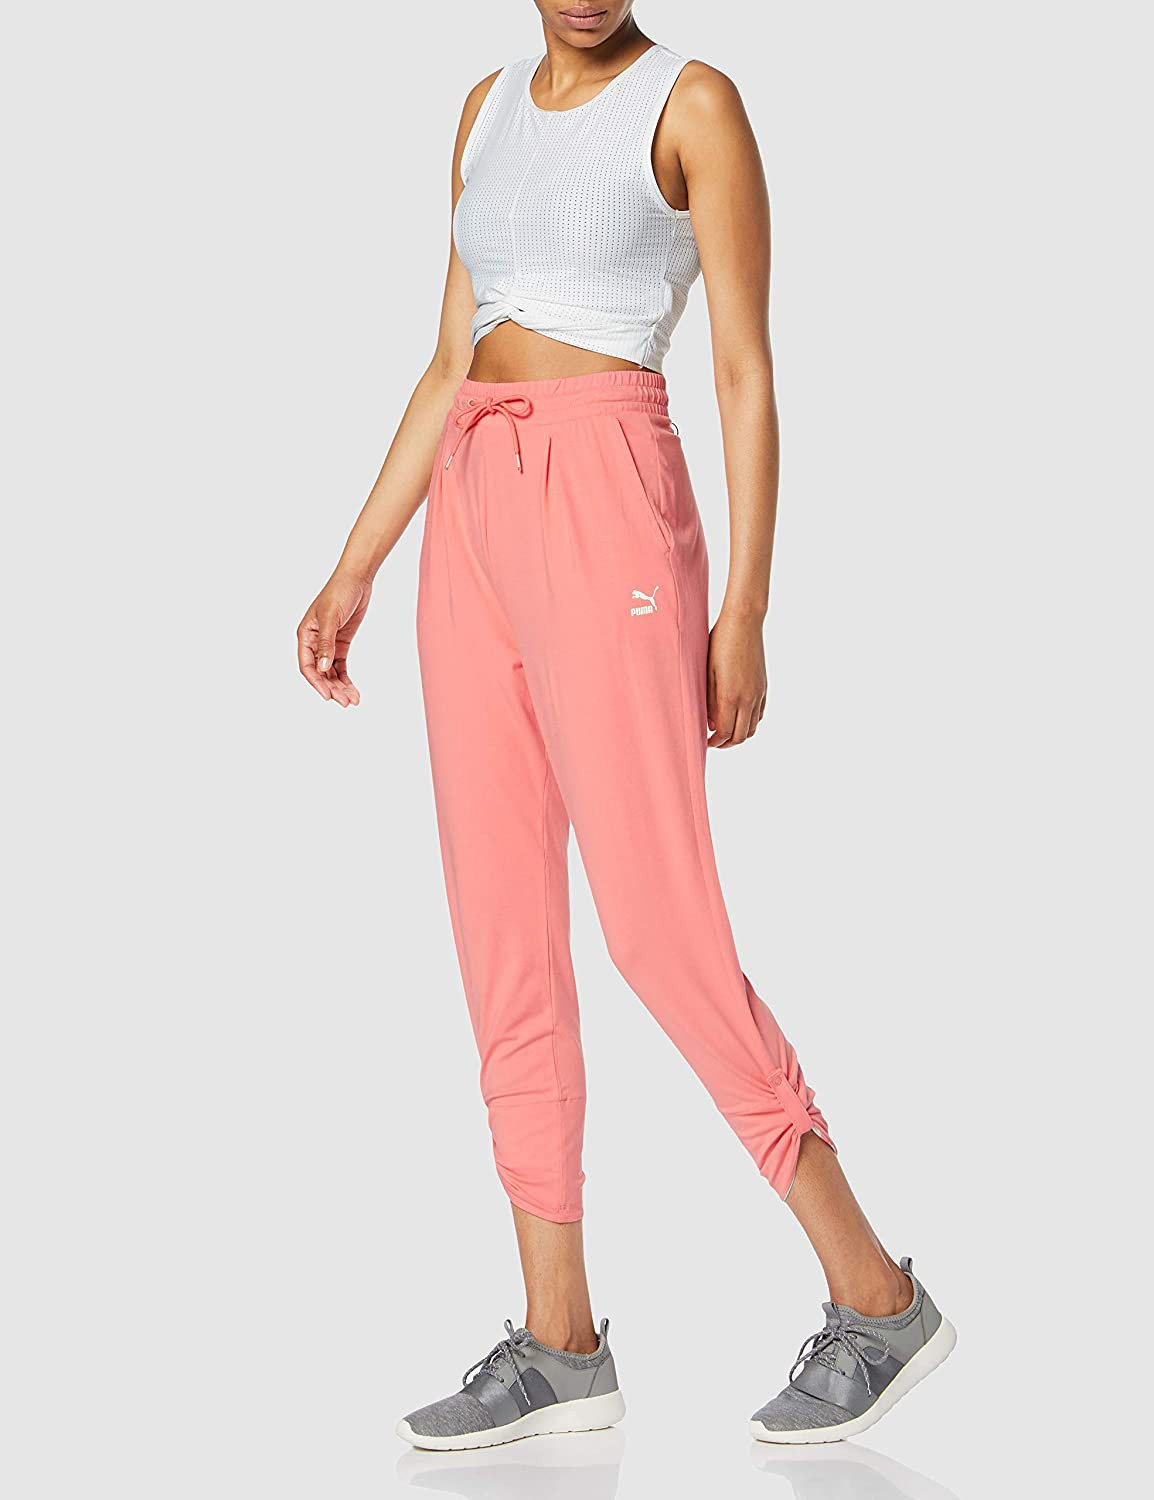 Puma Track pants for women